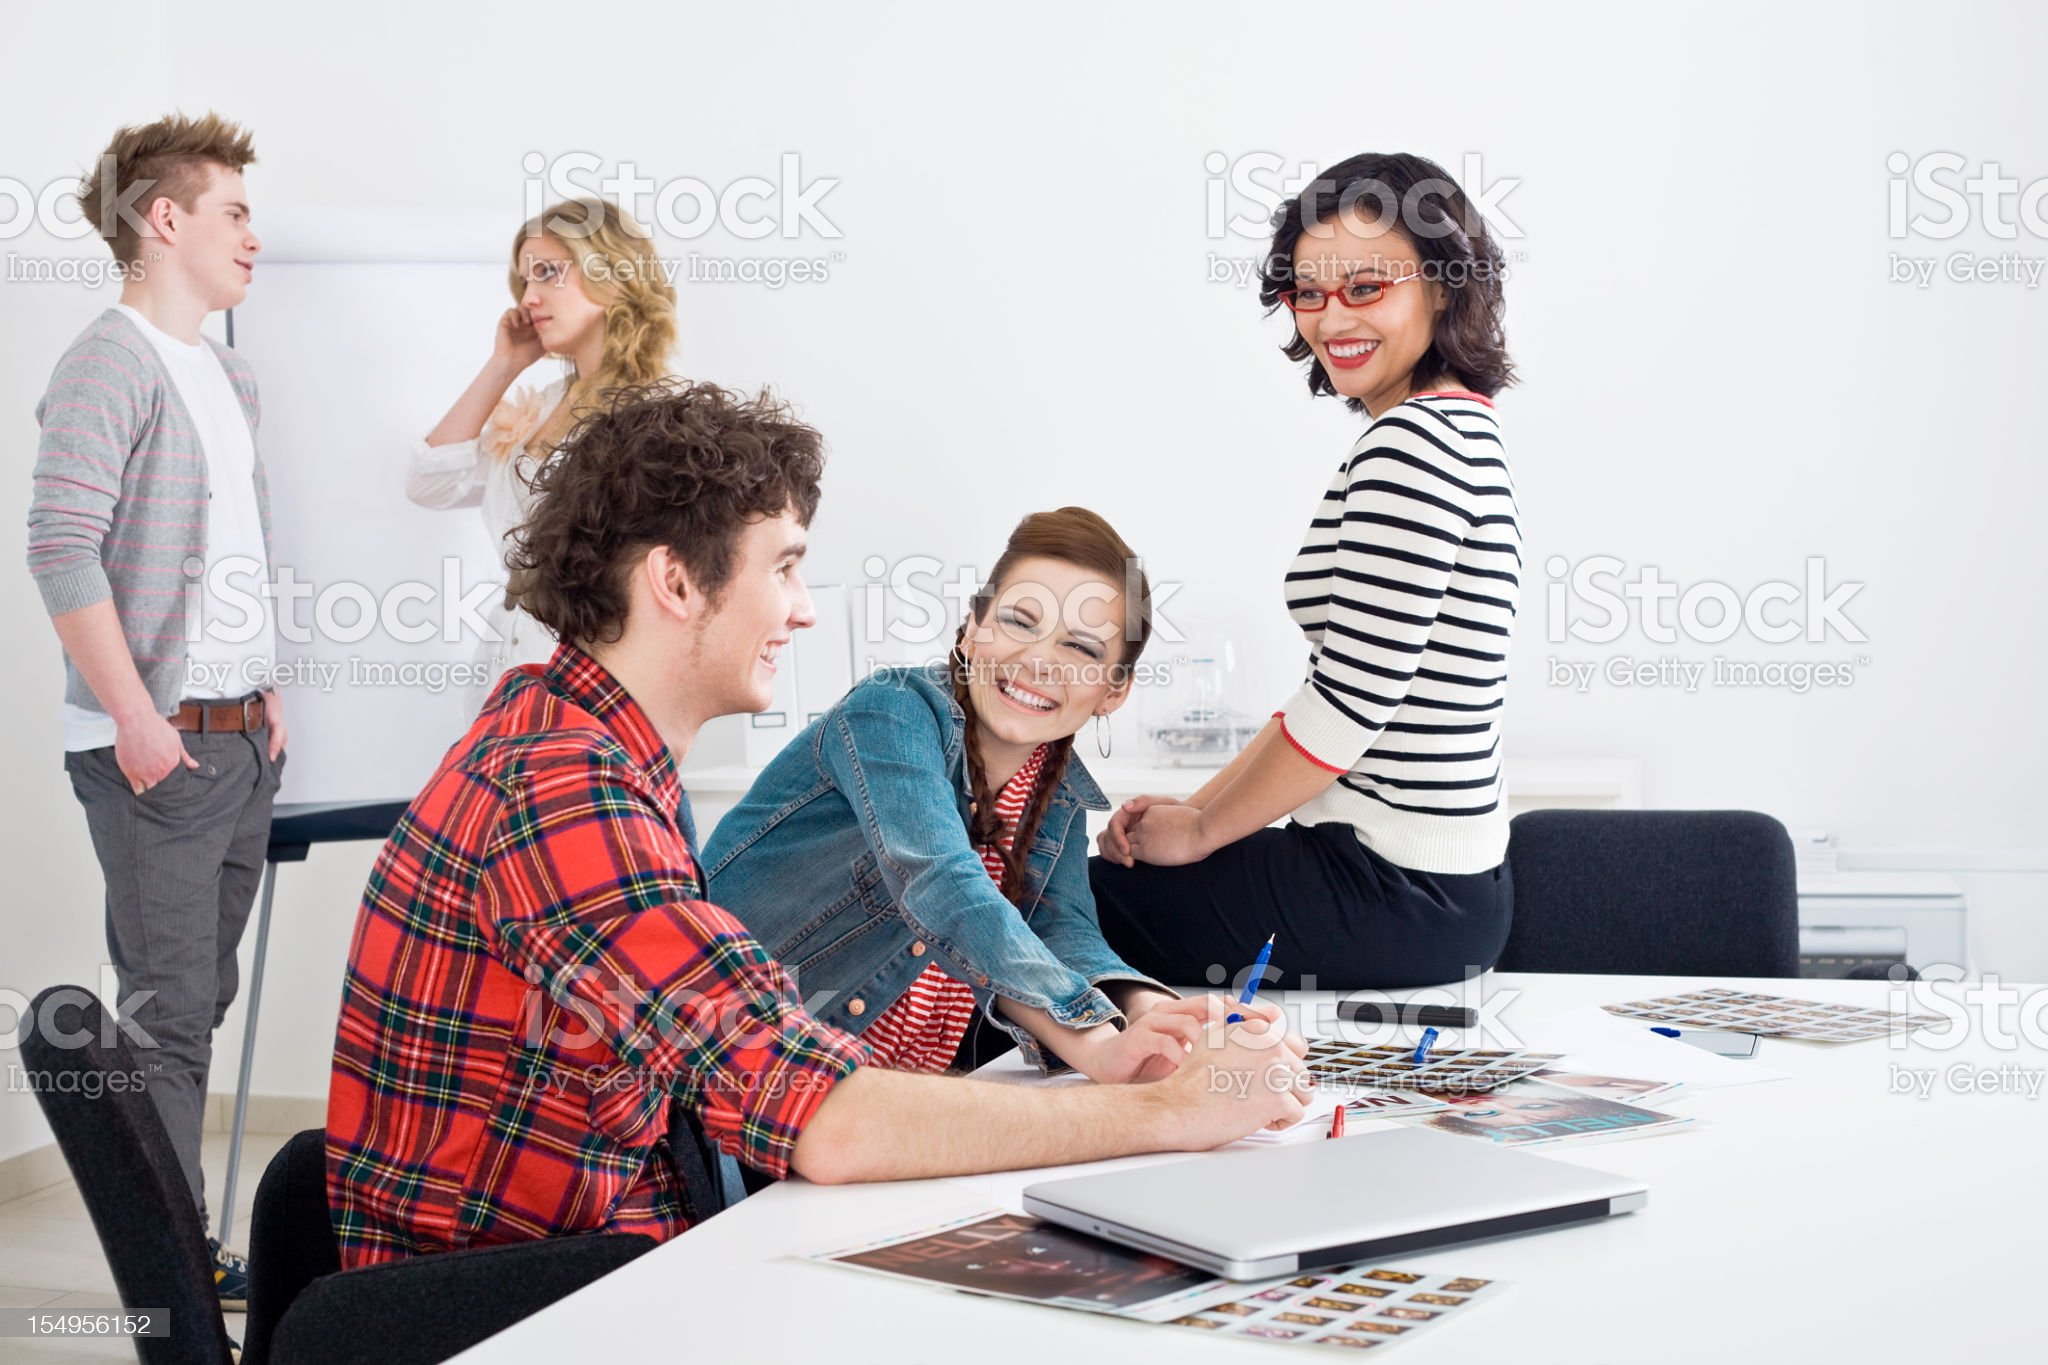 Creative Meeting in a Boardroom royalty-free stock photo